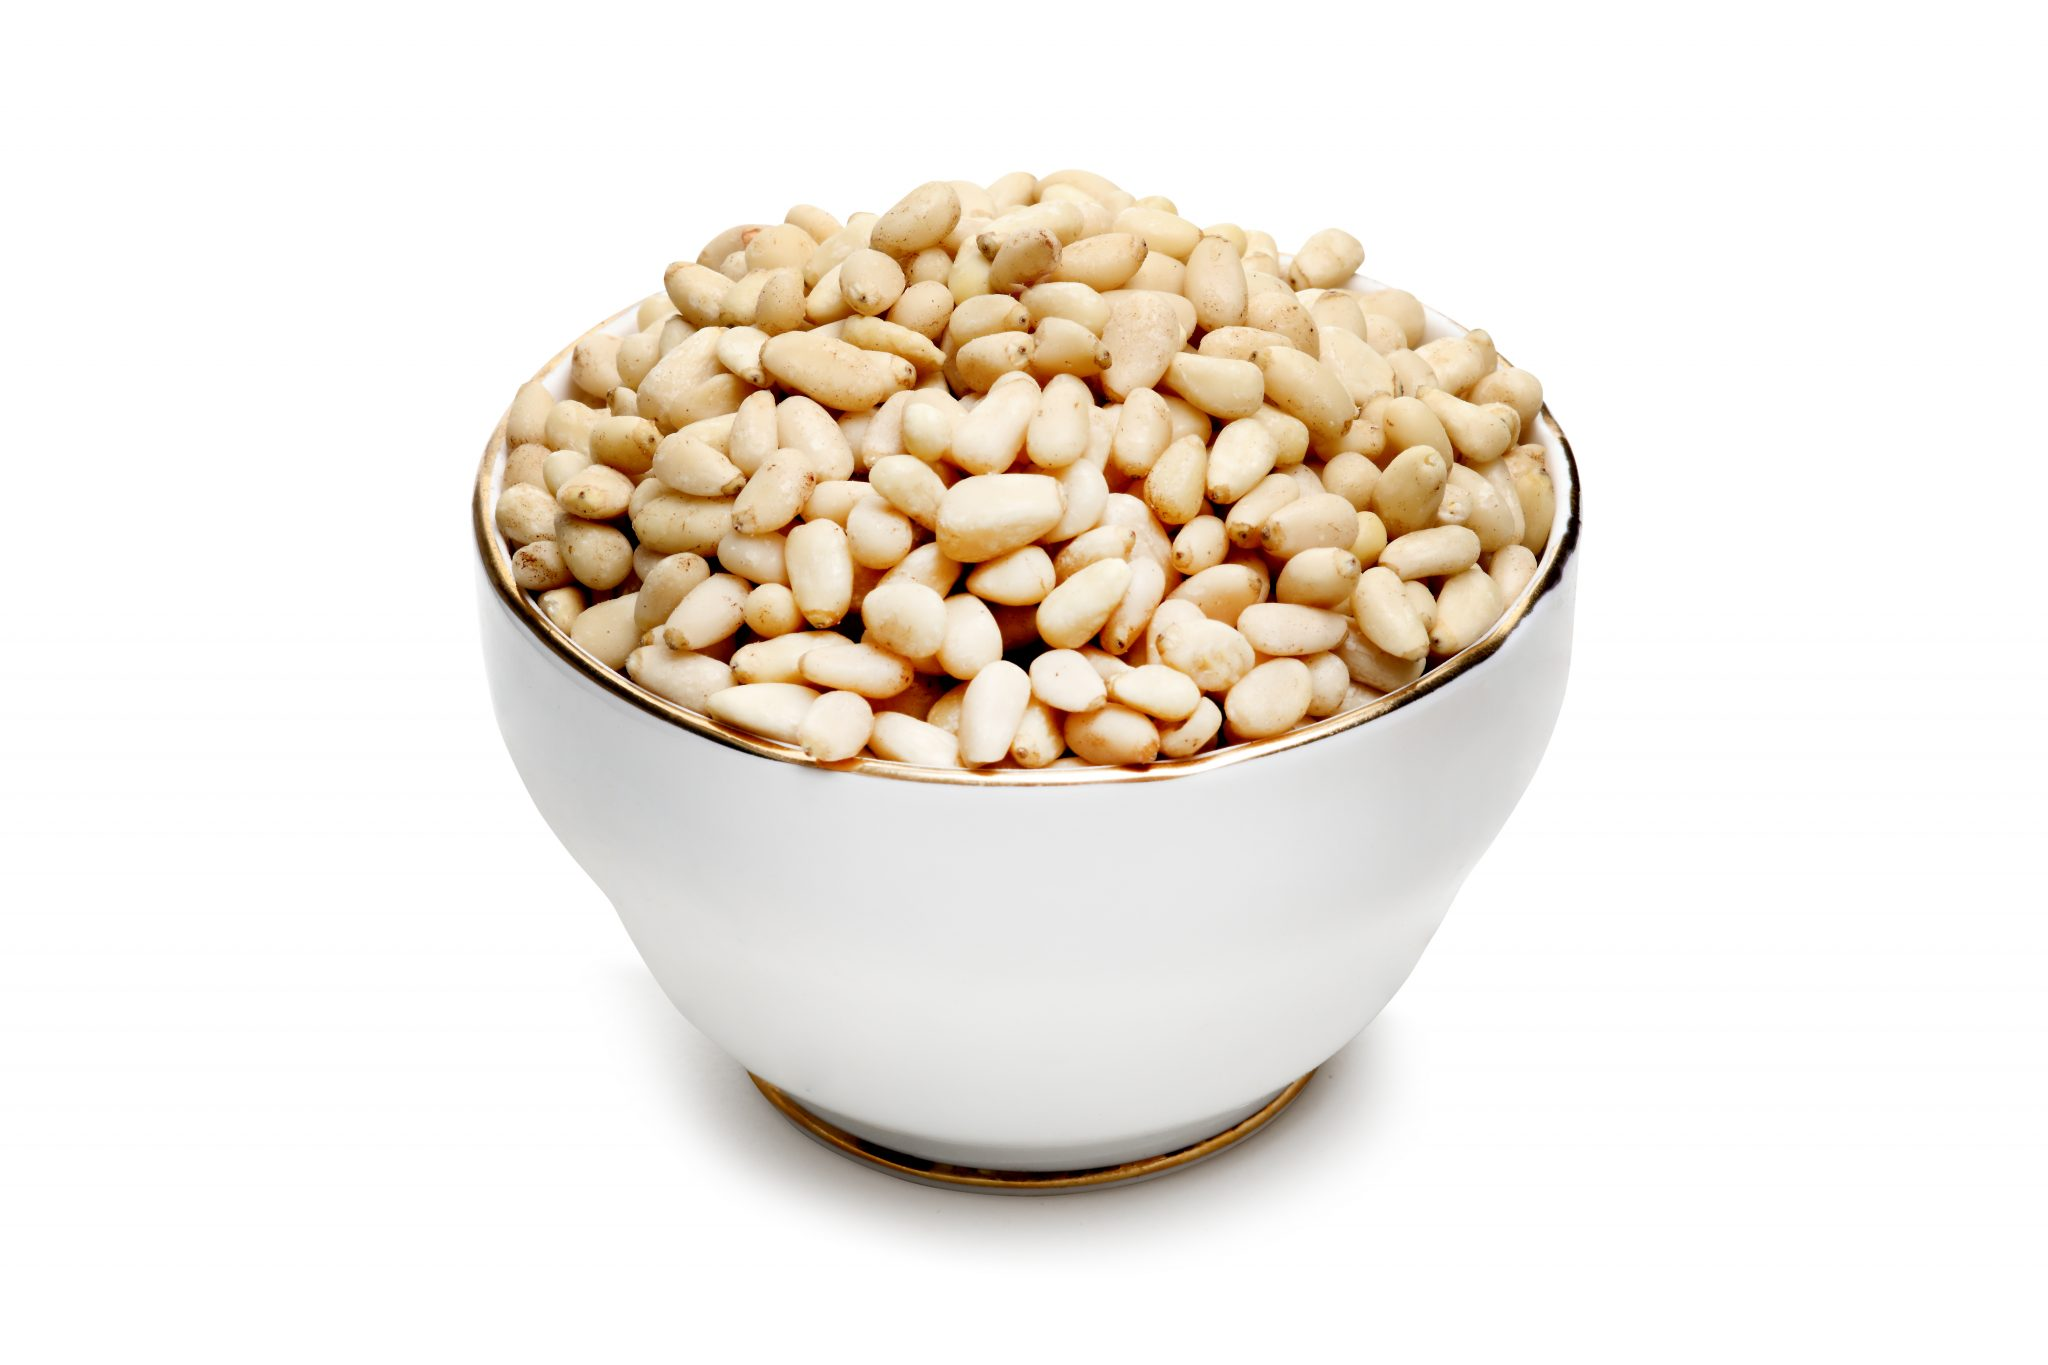 Chandras healthy vegan snack pine nuts in a bowl